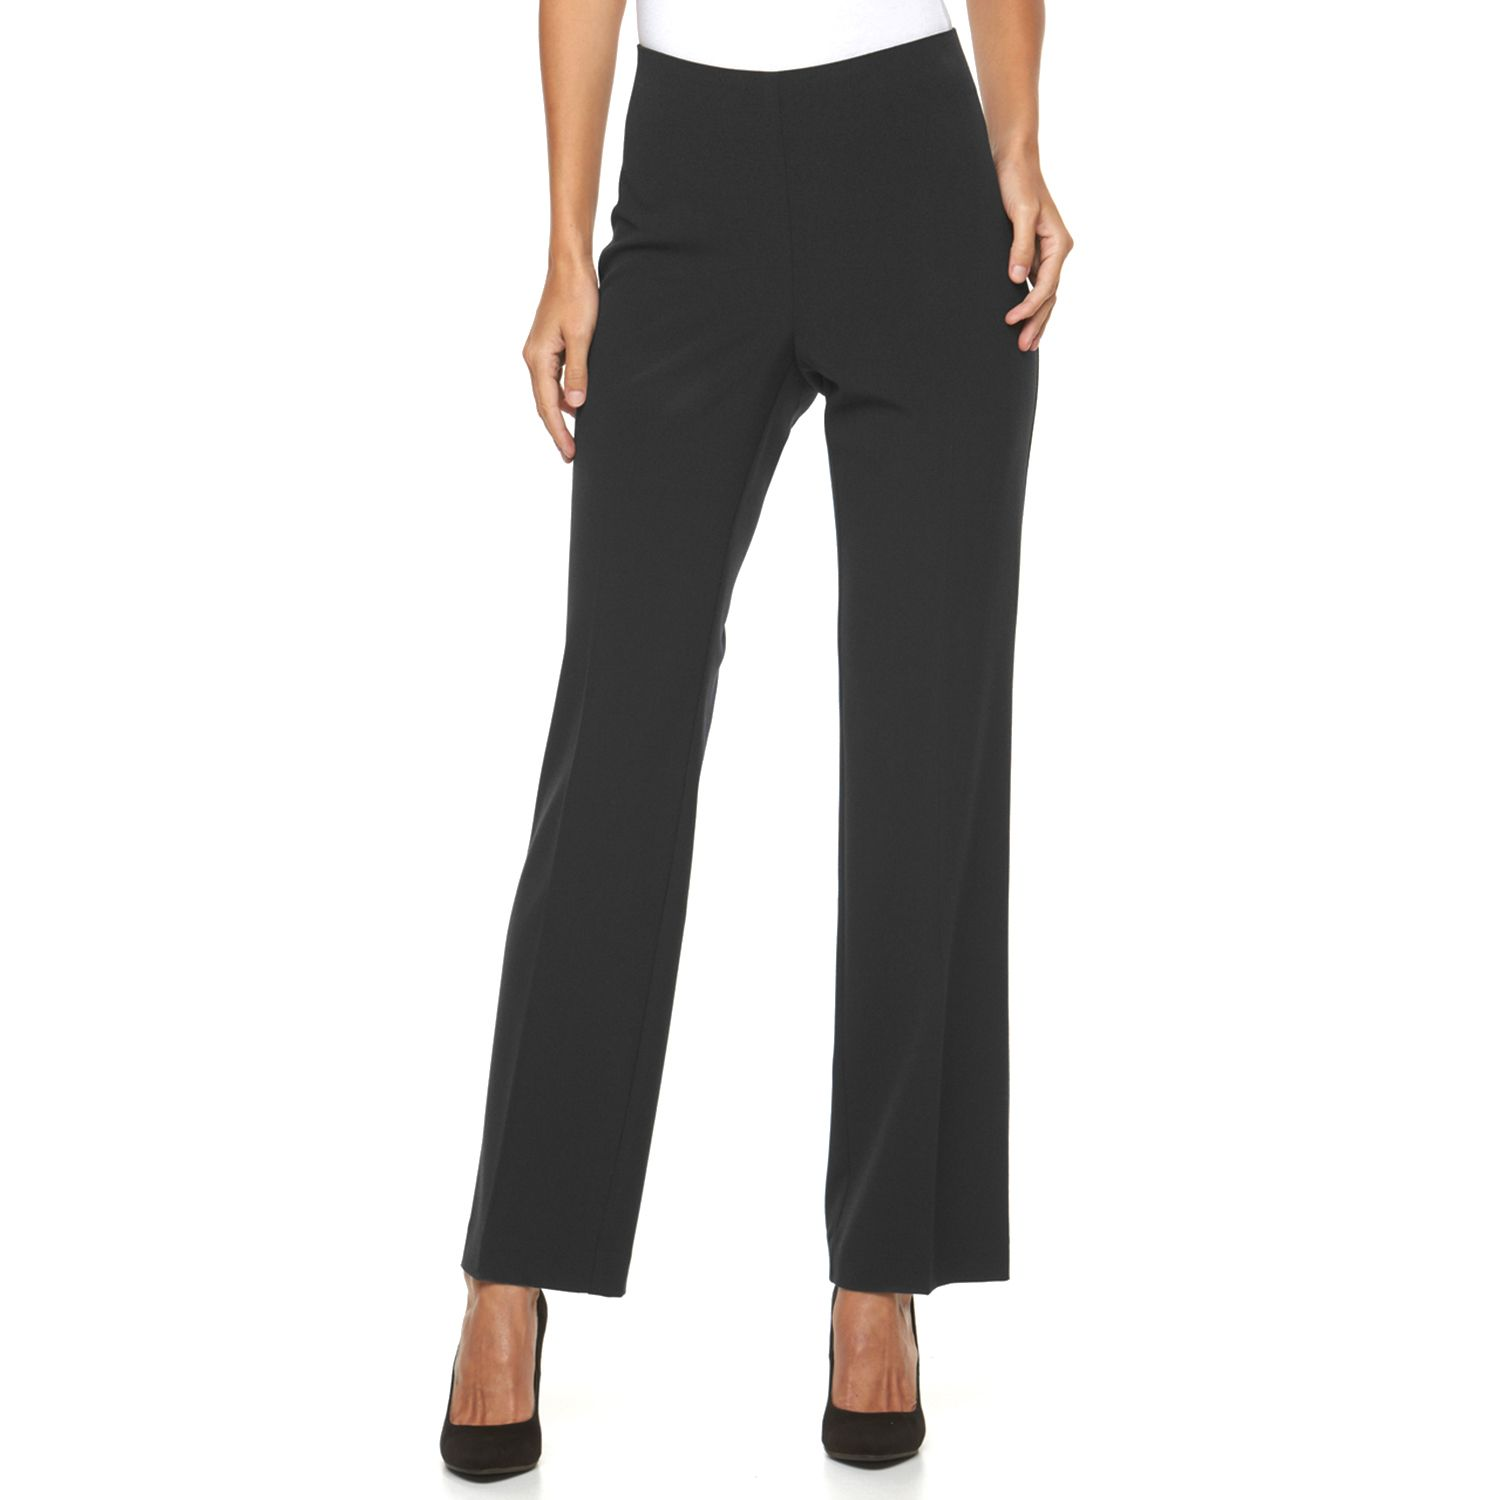 Straight Leg Dress Pants 9zPx0T2m